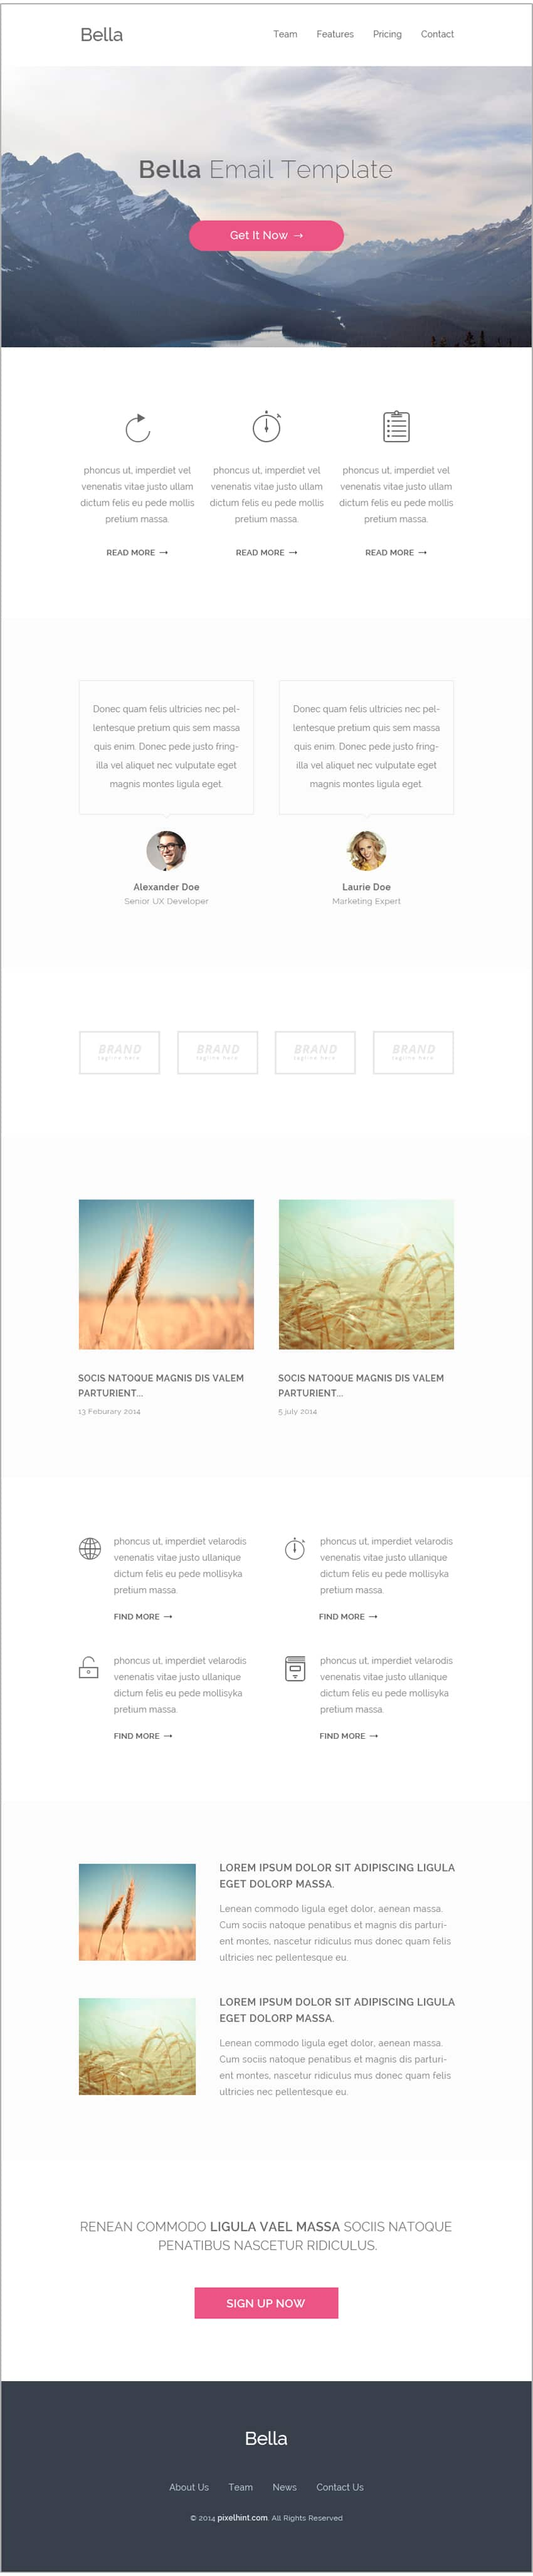 Bella-Free-Email-Template